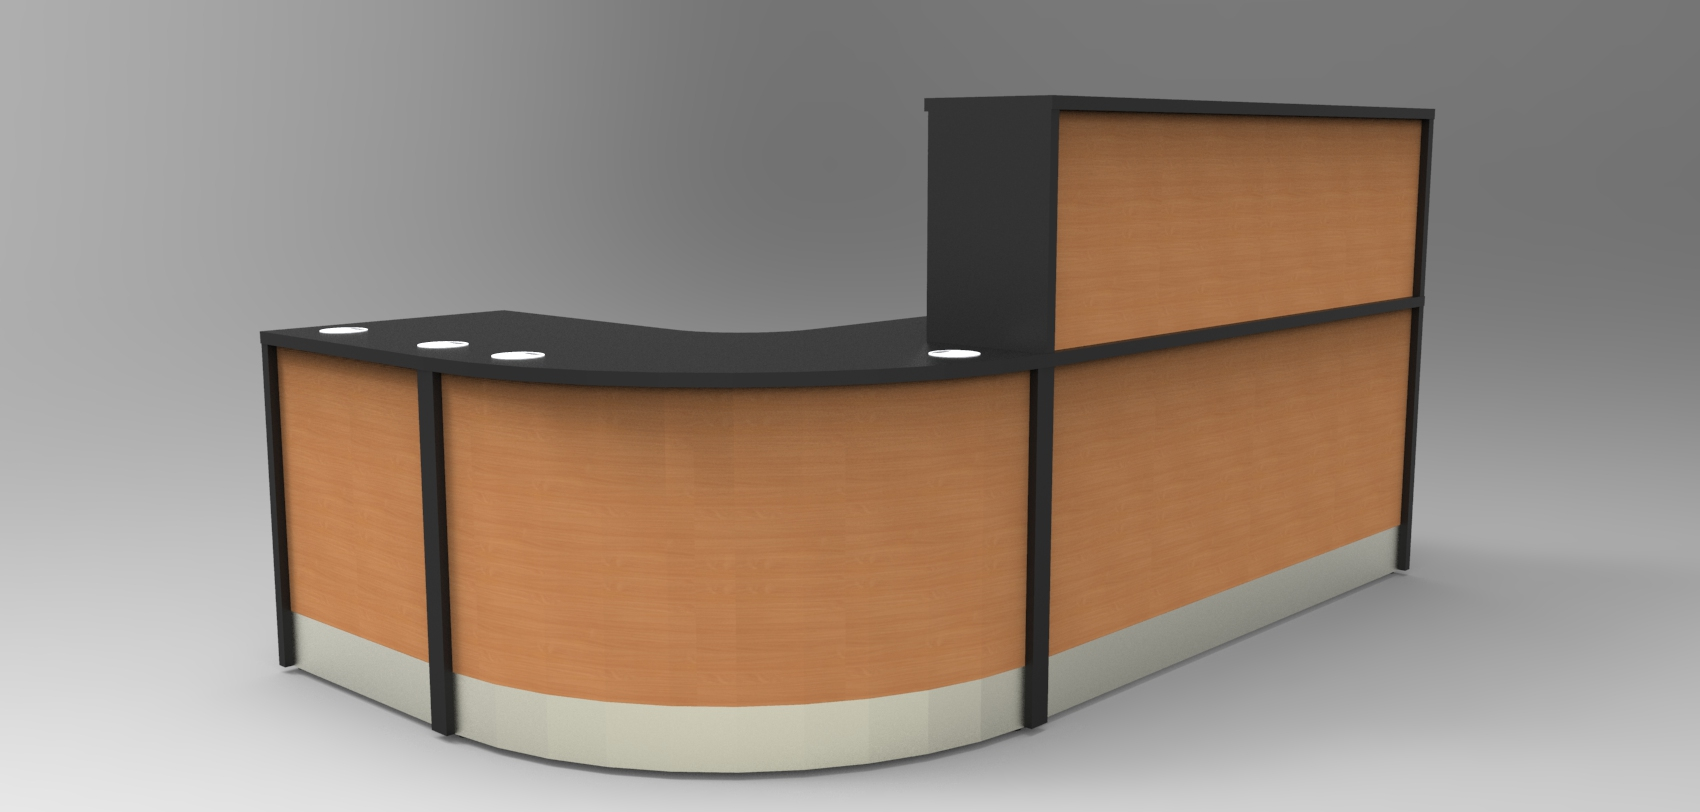 Render -Flex standard modular reception desk finished in Black and Beech